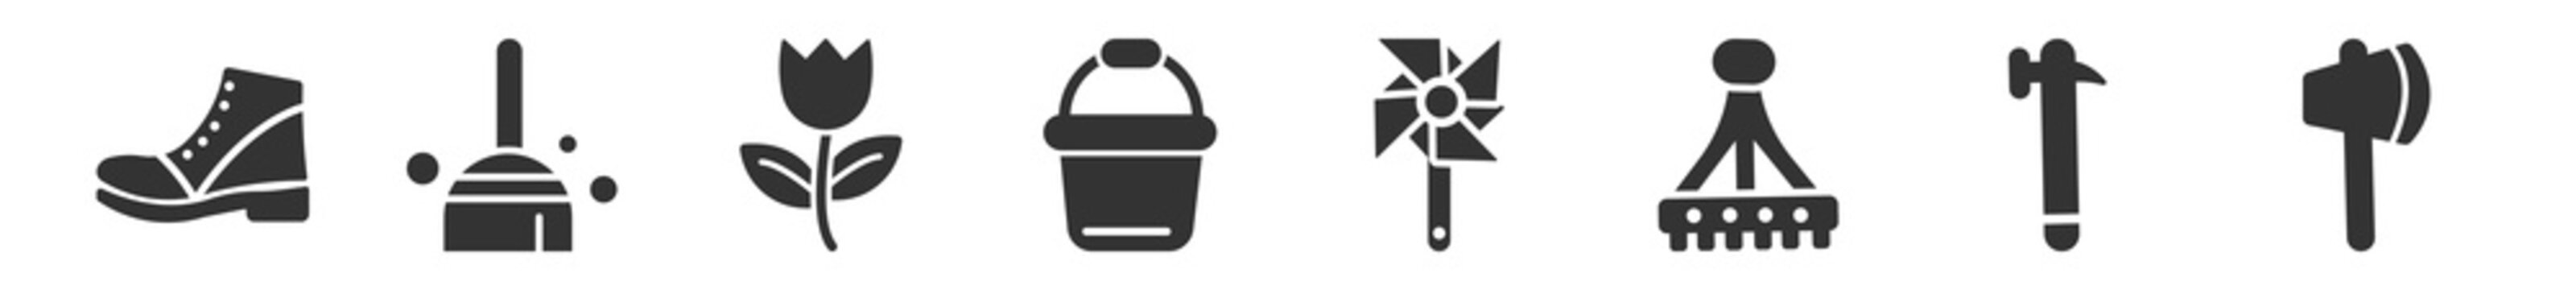 filled set of gardening icons. glyph vector icons such as boot shoes, brooming, tulip, pail, pinwheel, wood cutting. vector illustration.